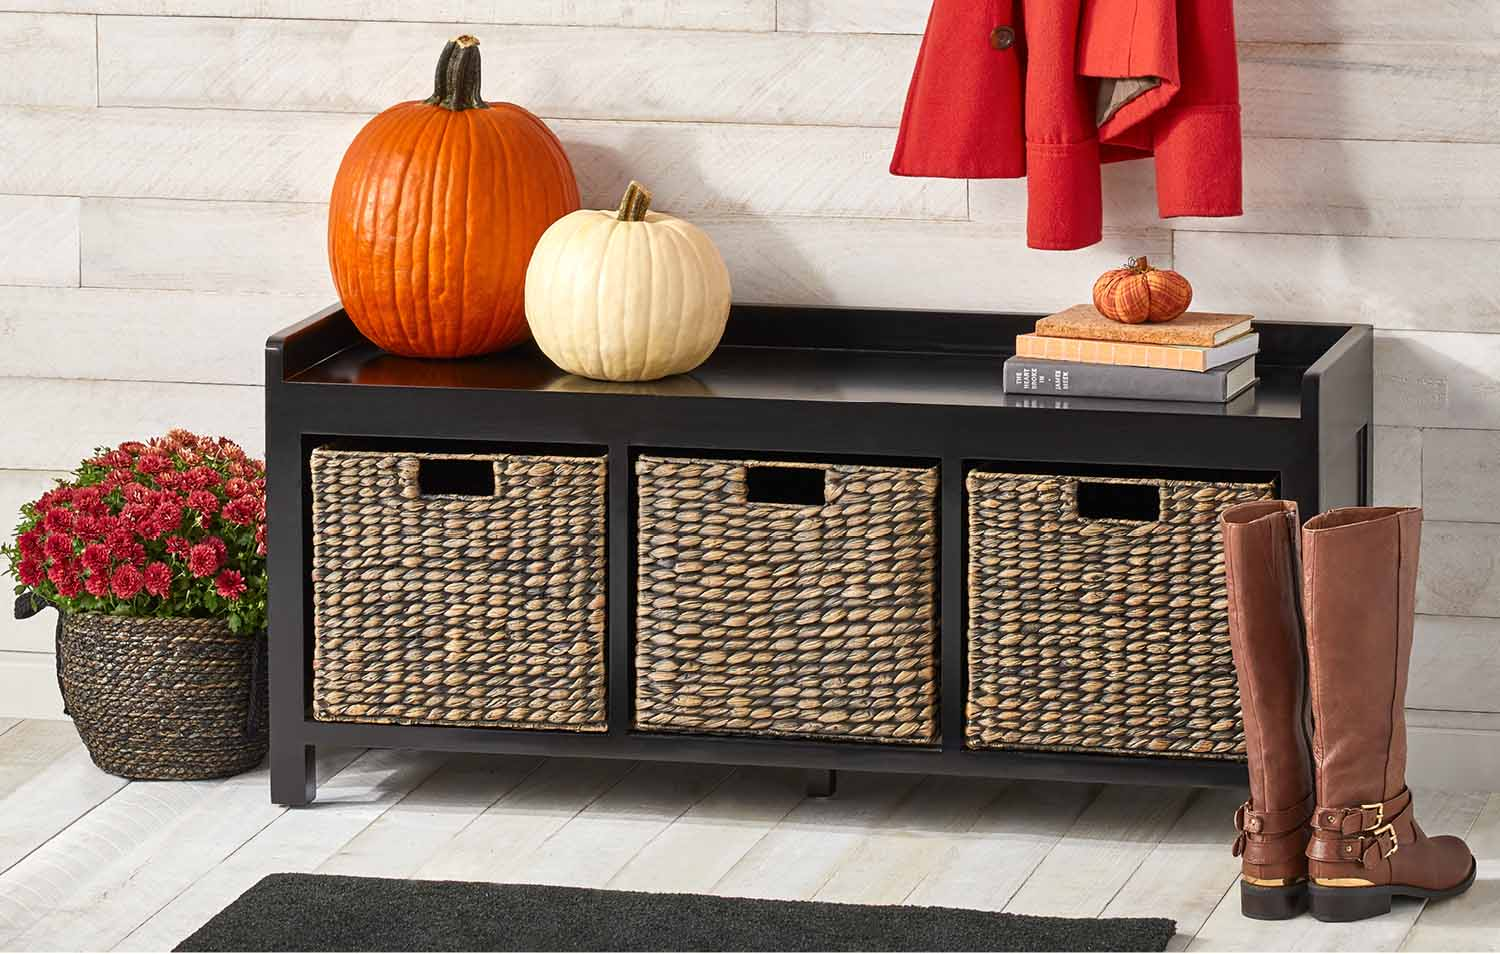 black bench with woven baskets and pumpkins mums for entryway